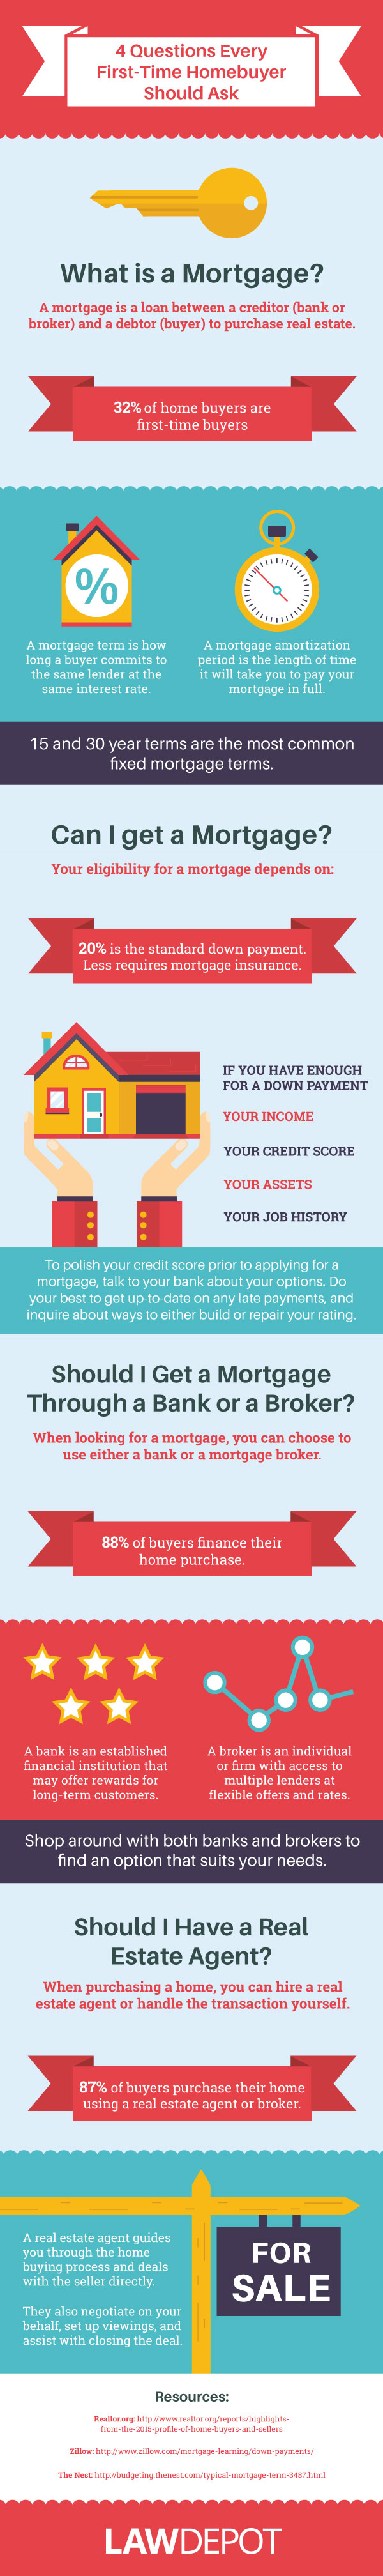 4 Questions Every First-Time Homebuyer Should Ask [Infographic]